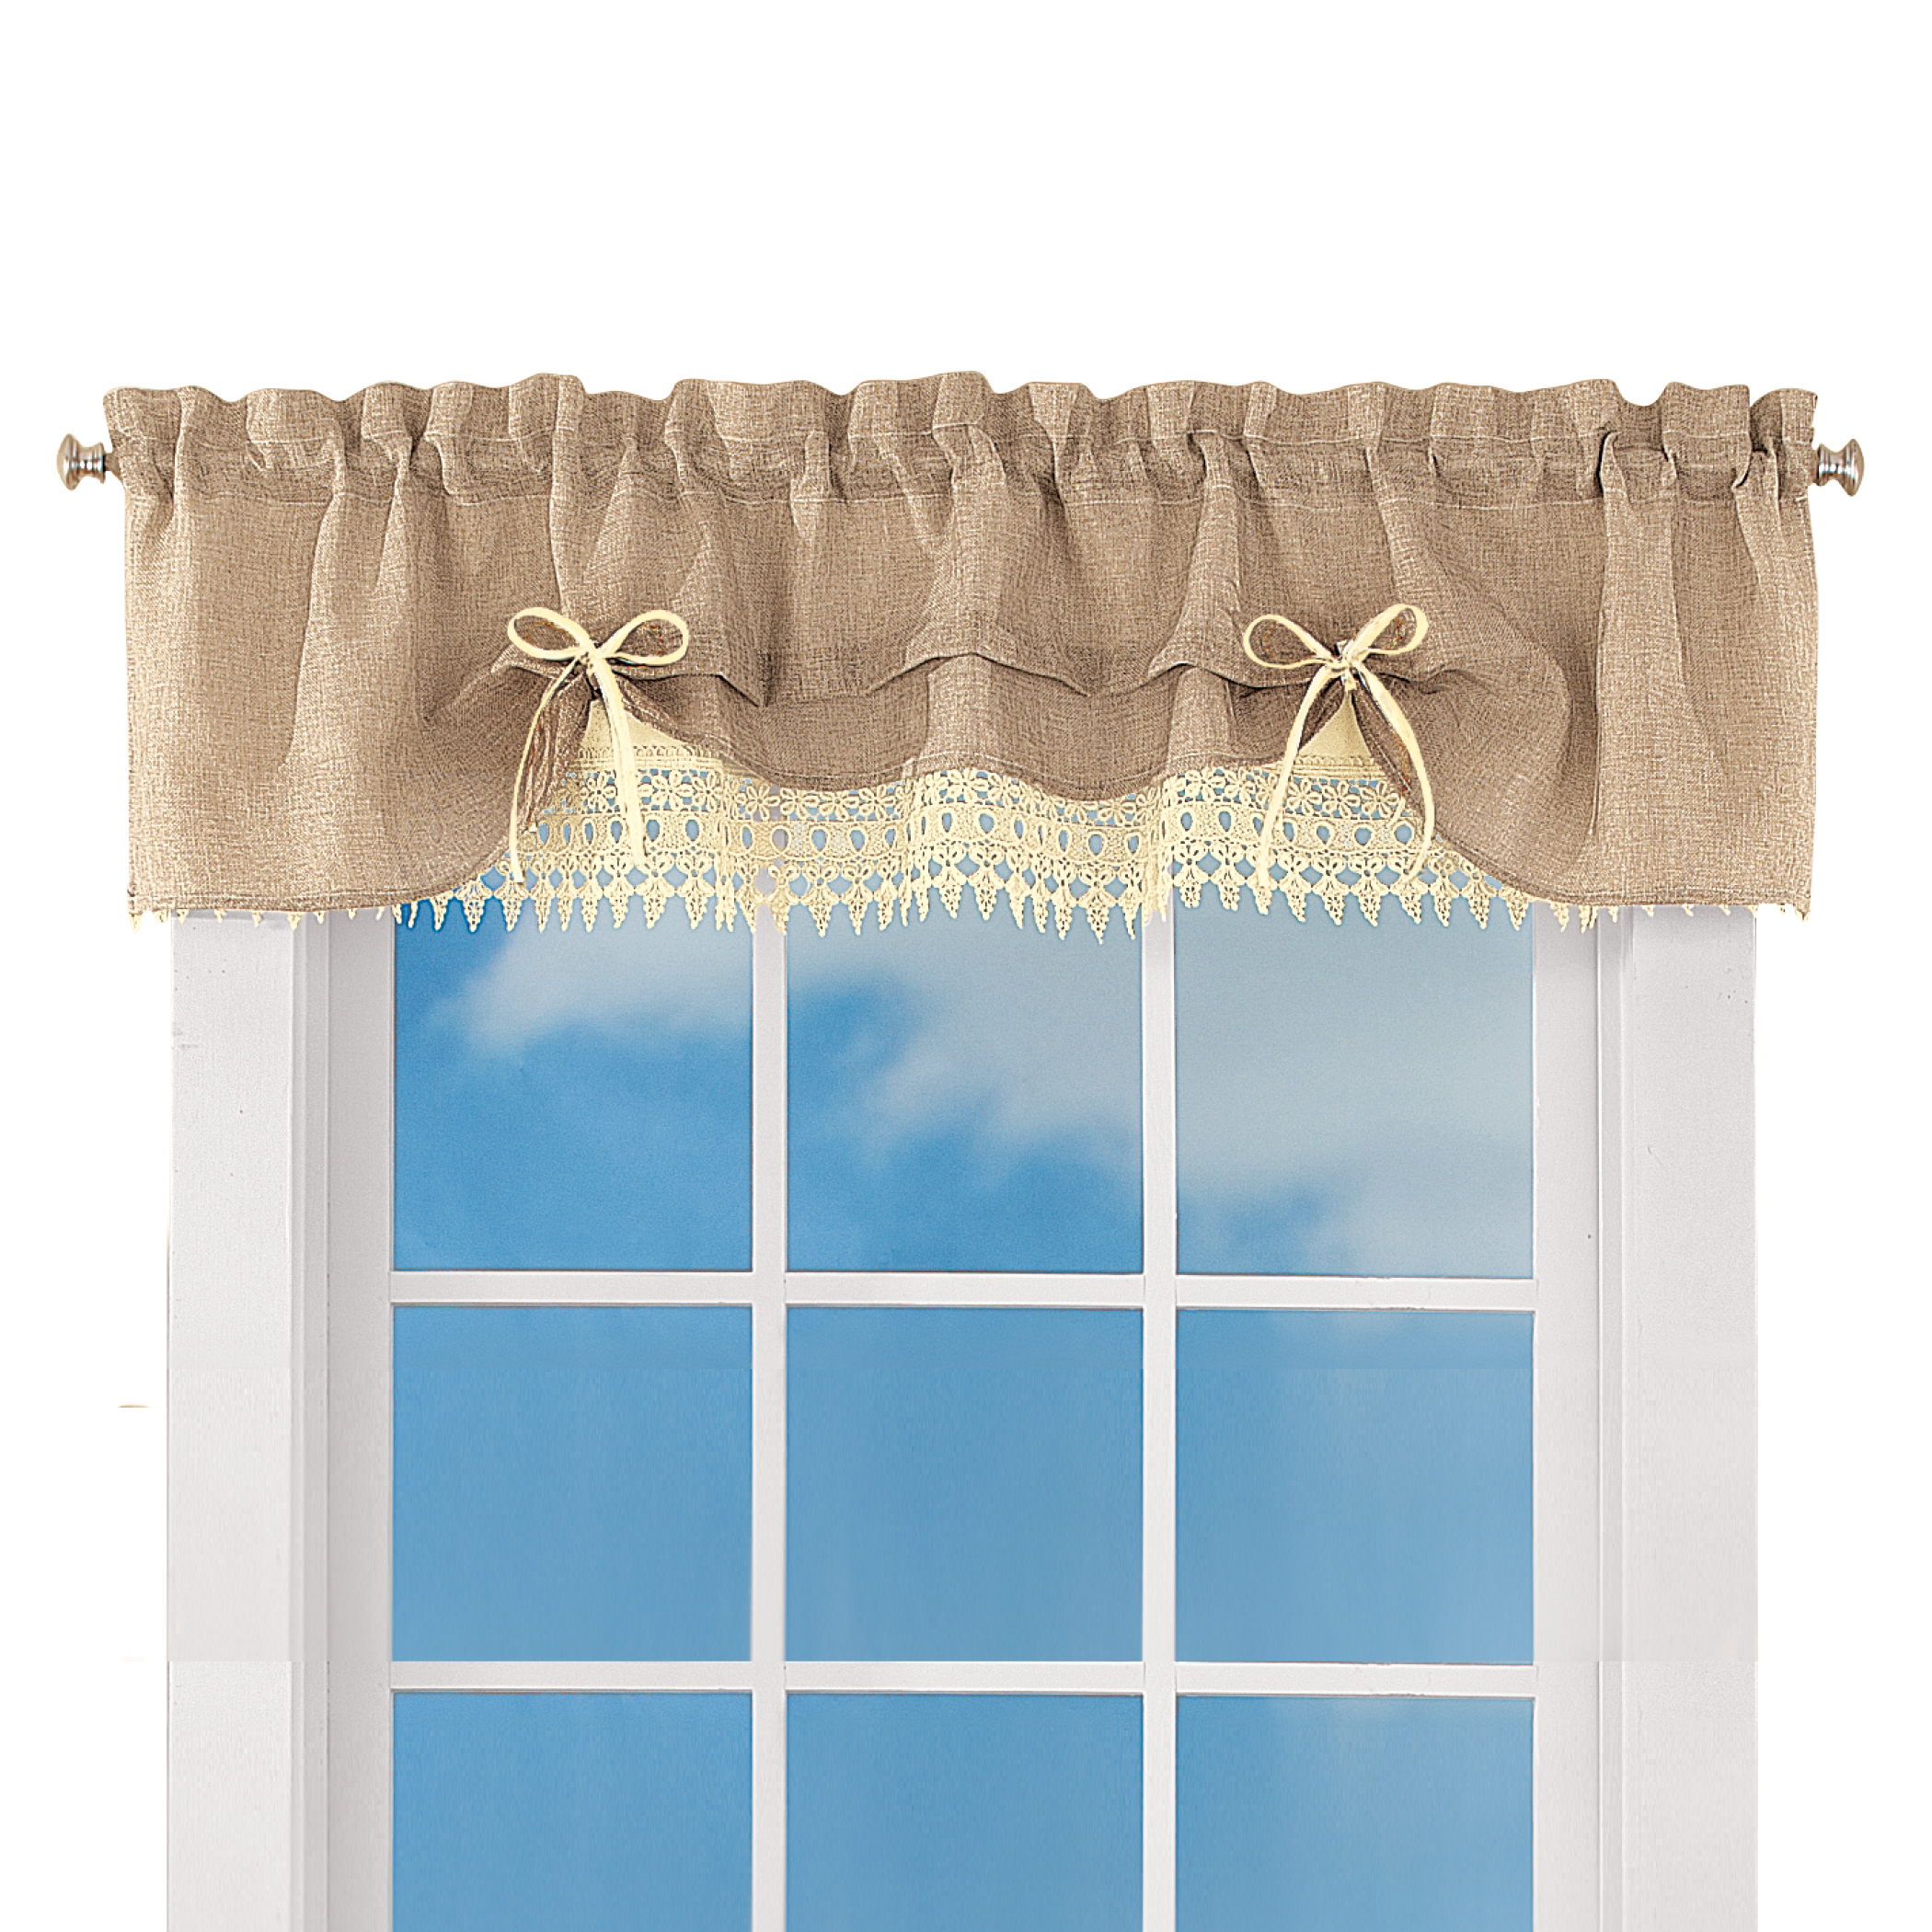 Well Known Burlap Lace Curtain Valance And Tiers Pertaining To Floral Lace Rod Pocket Kitchen Curtain Valance And Tiers Sets (View 20 of 20)